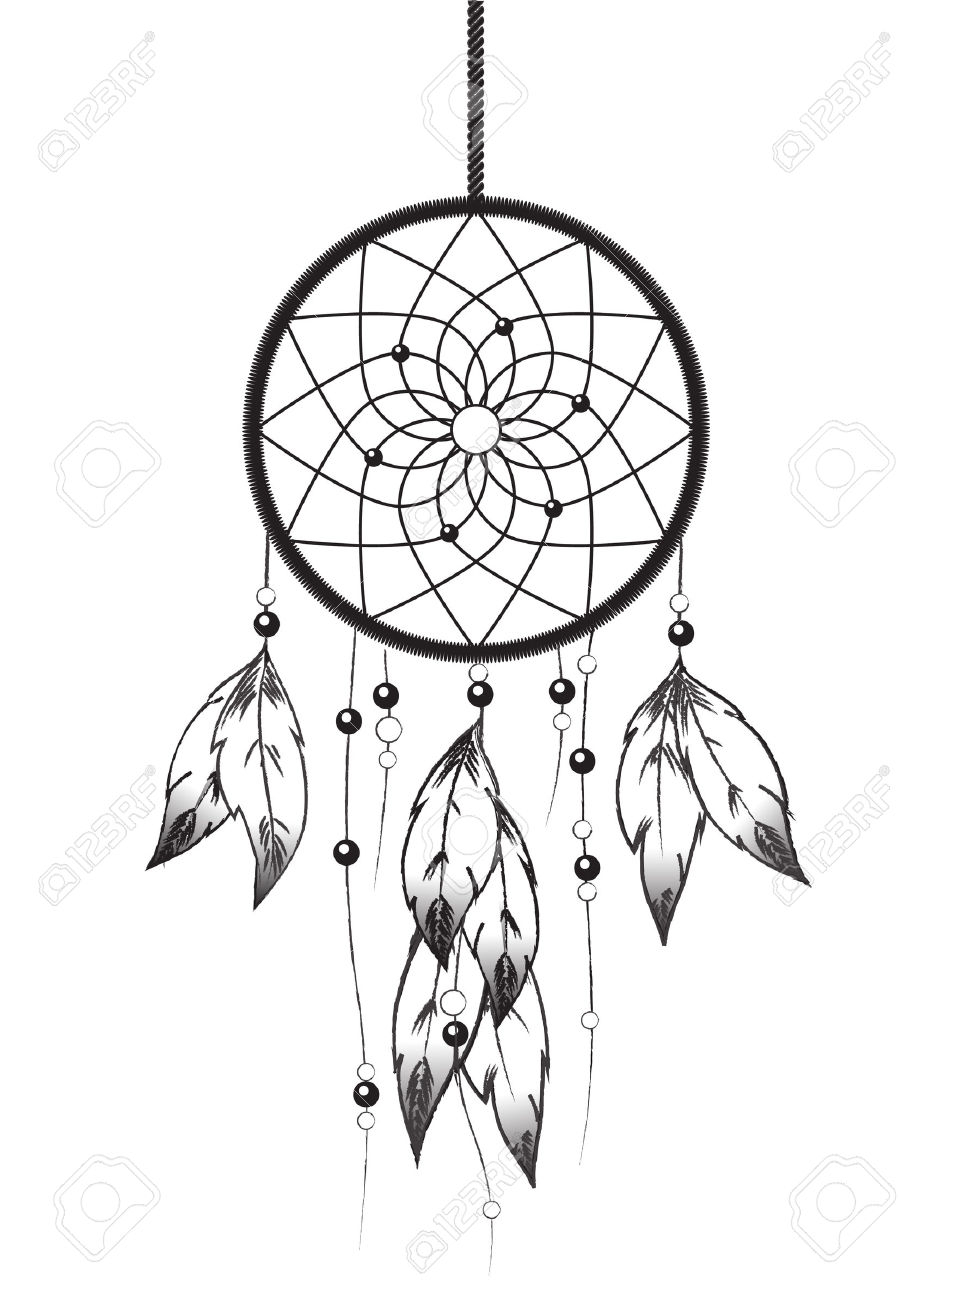 Dream Catchers Drawing At Getdrawings Com Free For Personal Use